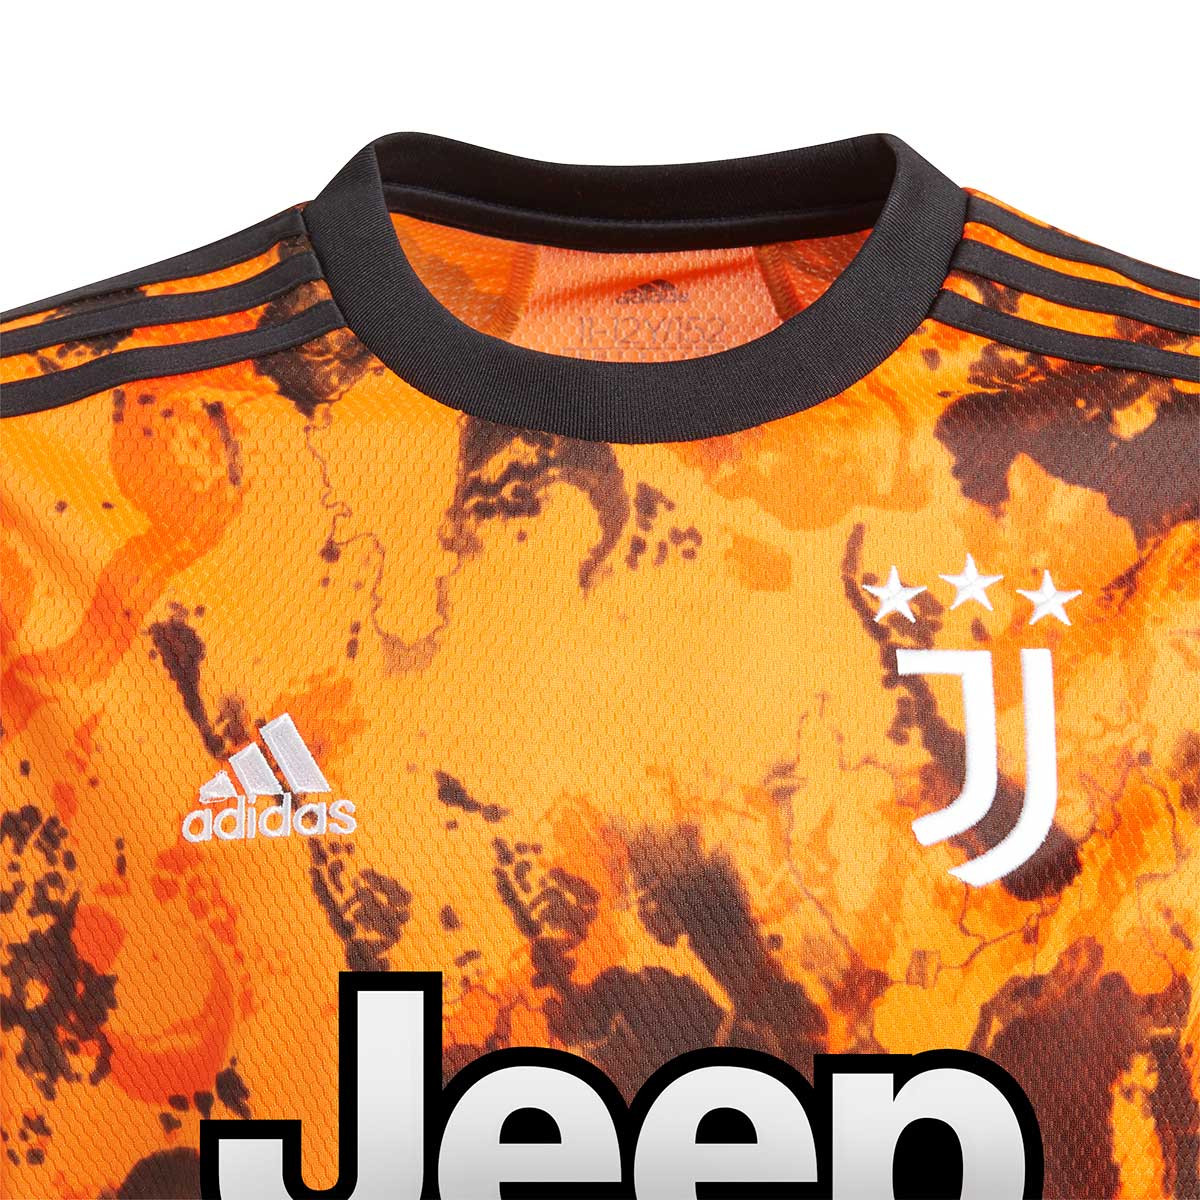 jersey adidas kids juventus 2020 2021 third bahia orange football store futbol emotion adidas kids juventus 2020 2021 third jersey